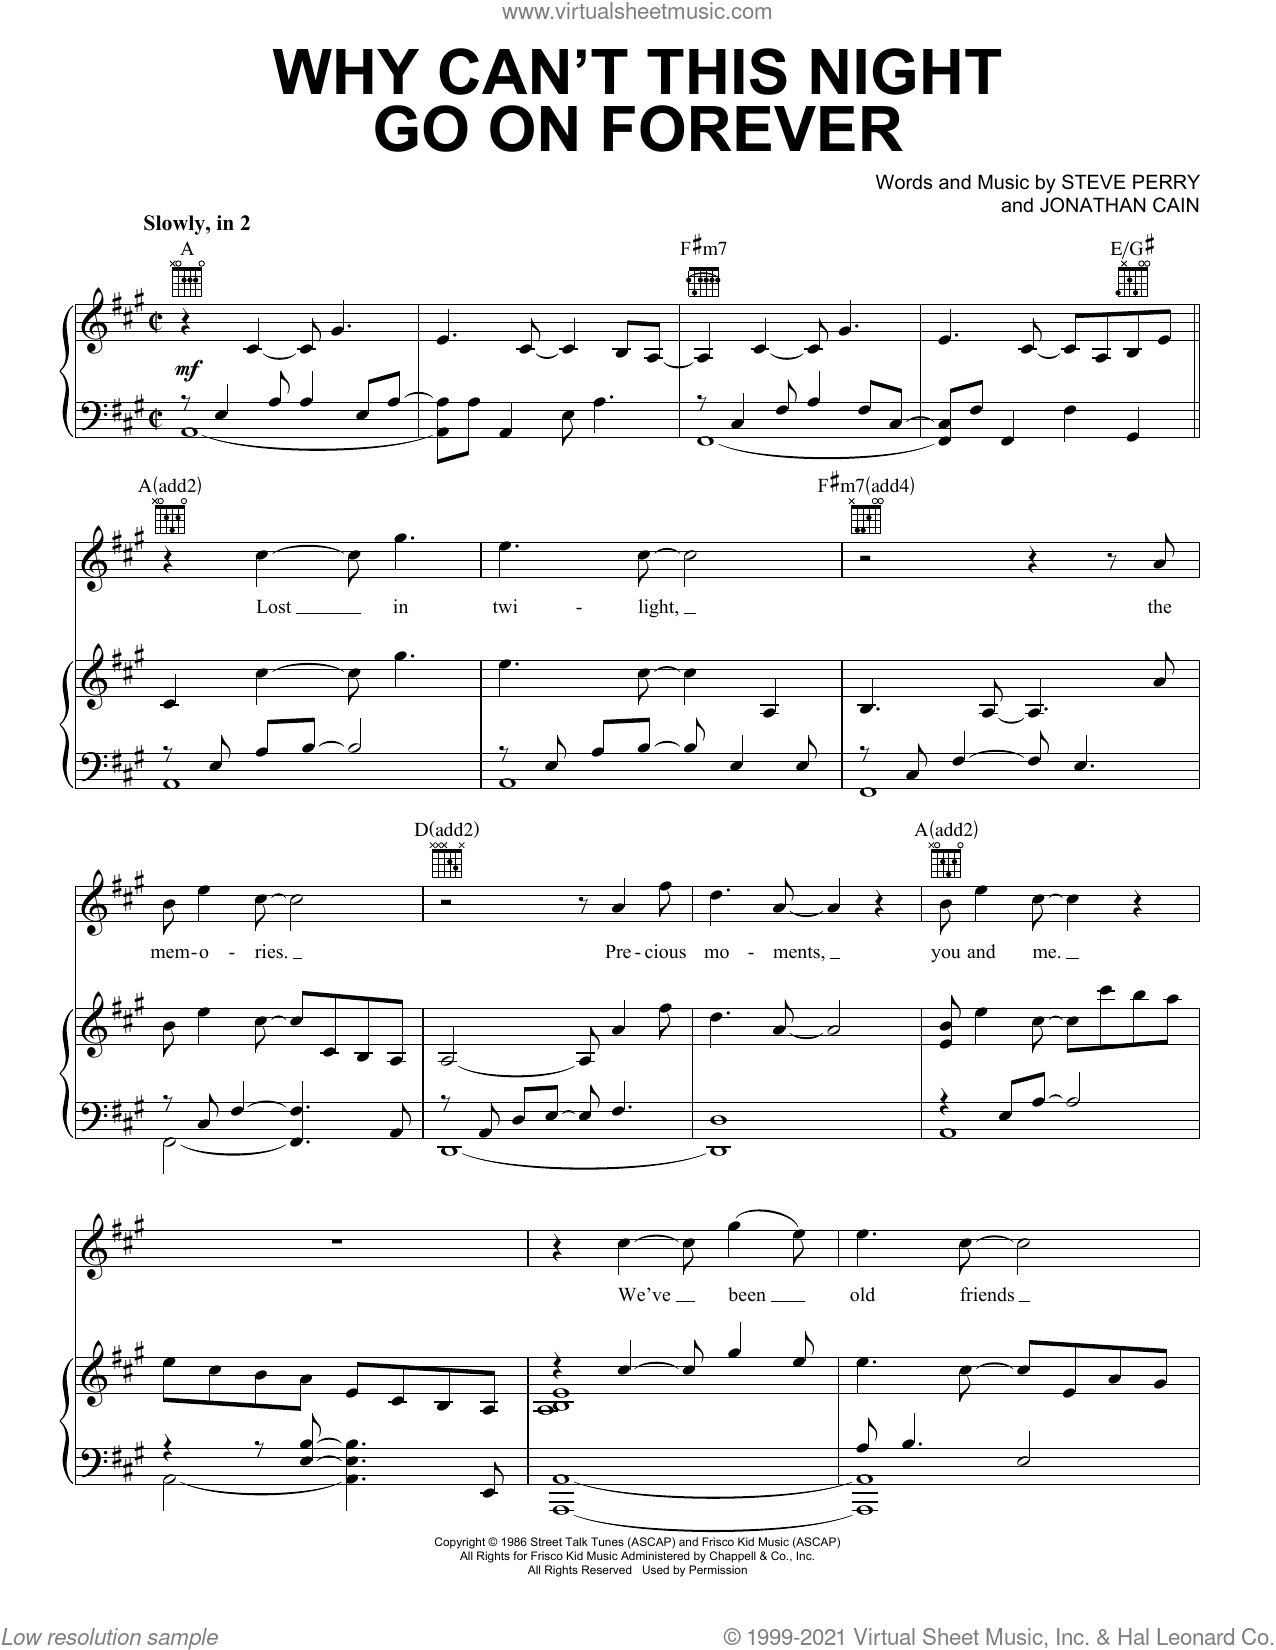 Why Can't This Night Go On Forever sheet music for voice, piano or guitar by Journey, Jonathan Cain and Steve Perry, intermediate skill level